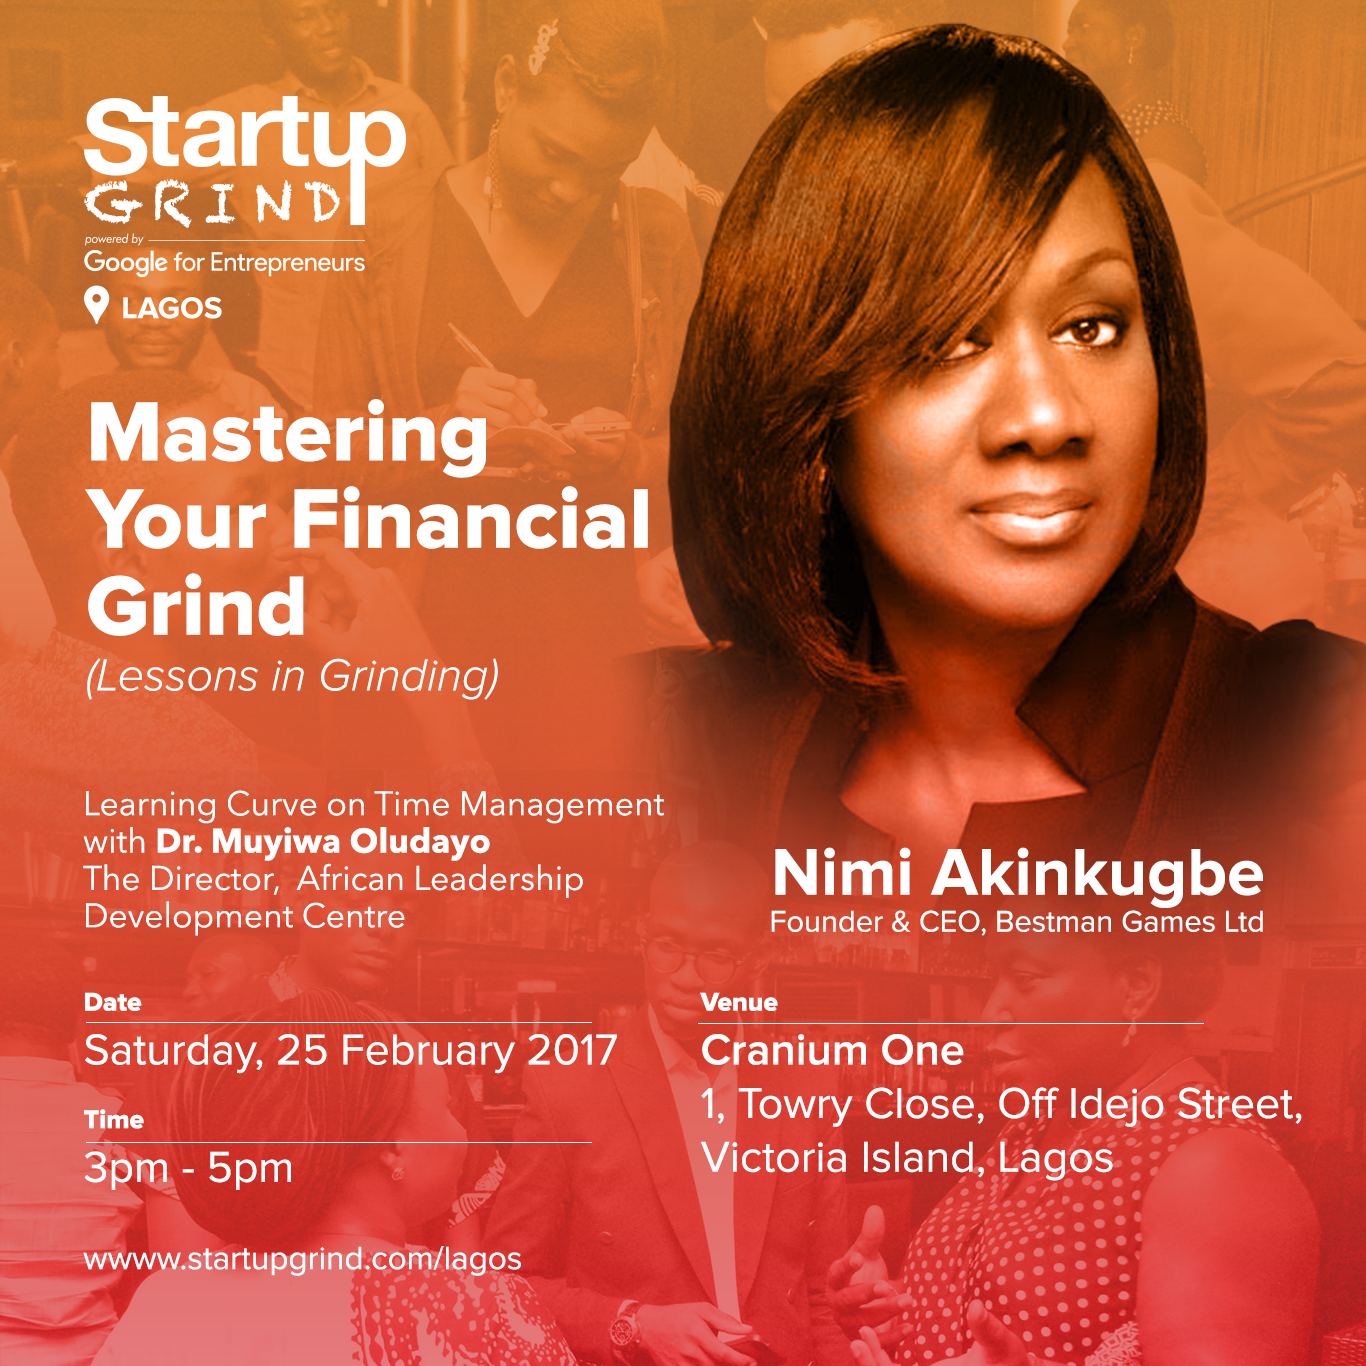 Our breakdown of Startup Grind Lagos' February Meetup with Nimi Akinkugbe and Muyiwa Oludayo